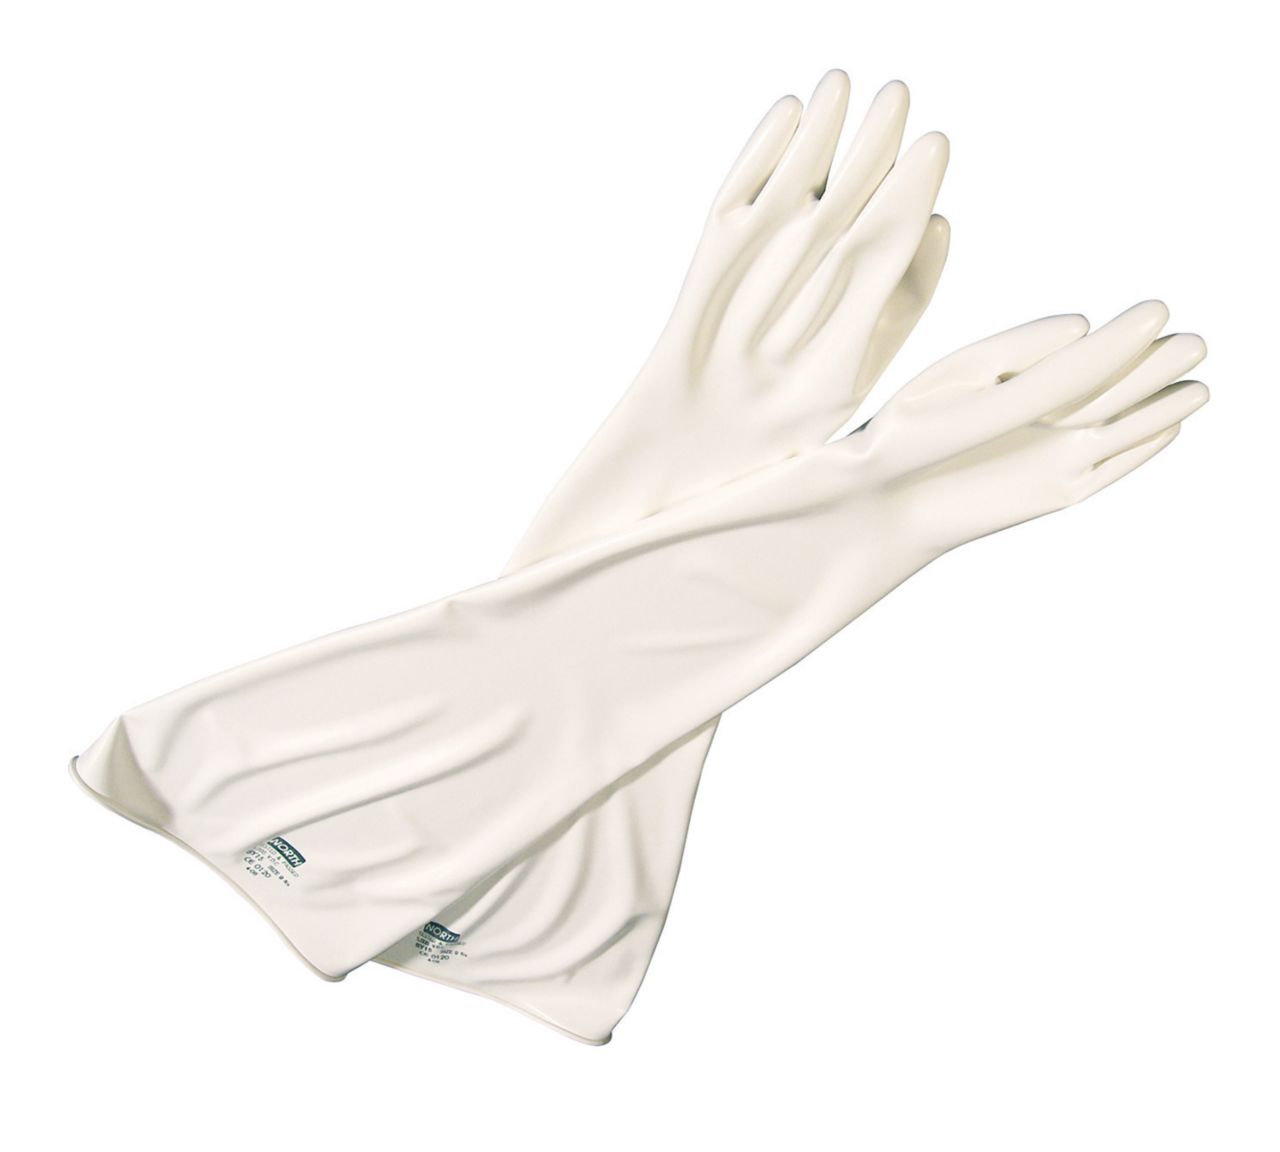 CSM Lead-Loaded Glovebox Gloves - 8YLY3032A